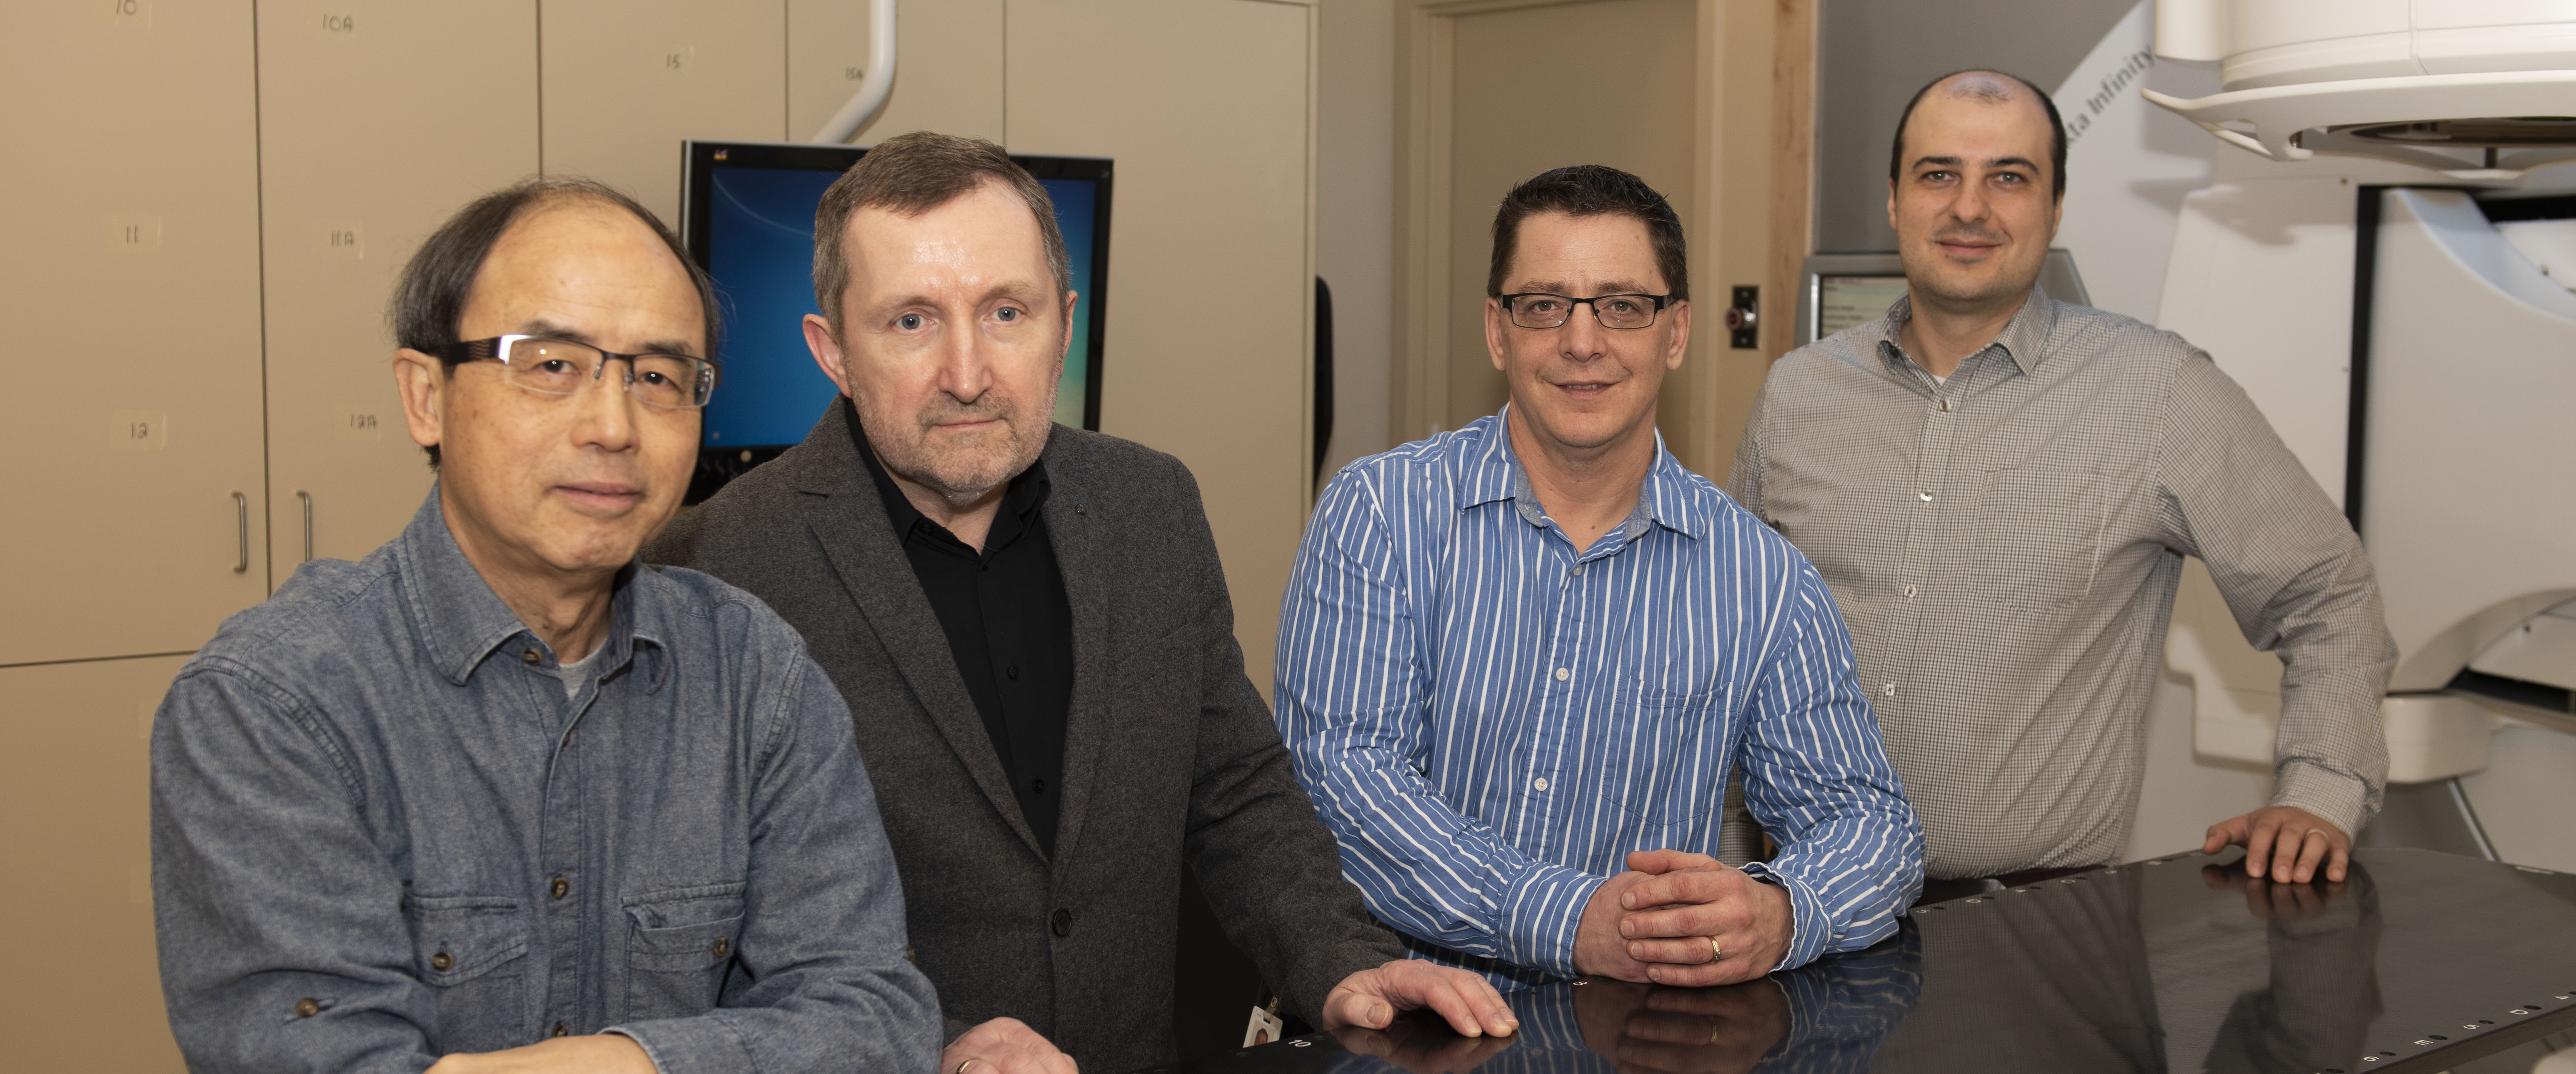 Photo of medical physics faculty members at Health Sciences North in Sudbury, Ontario